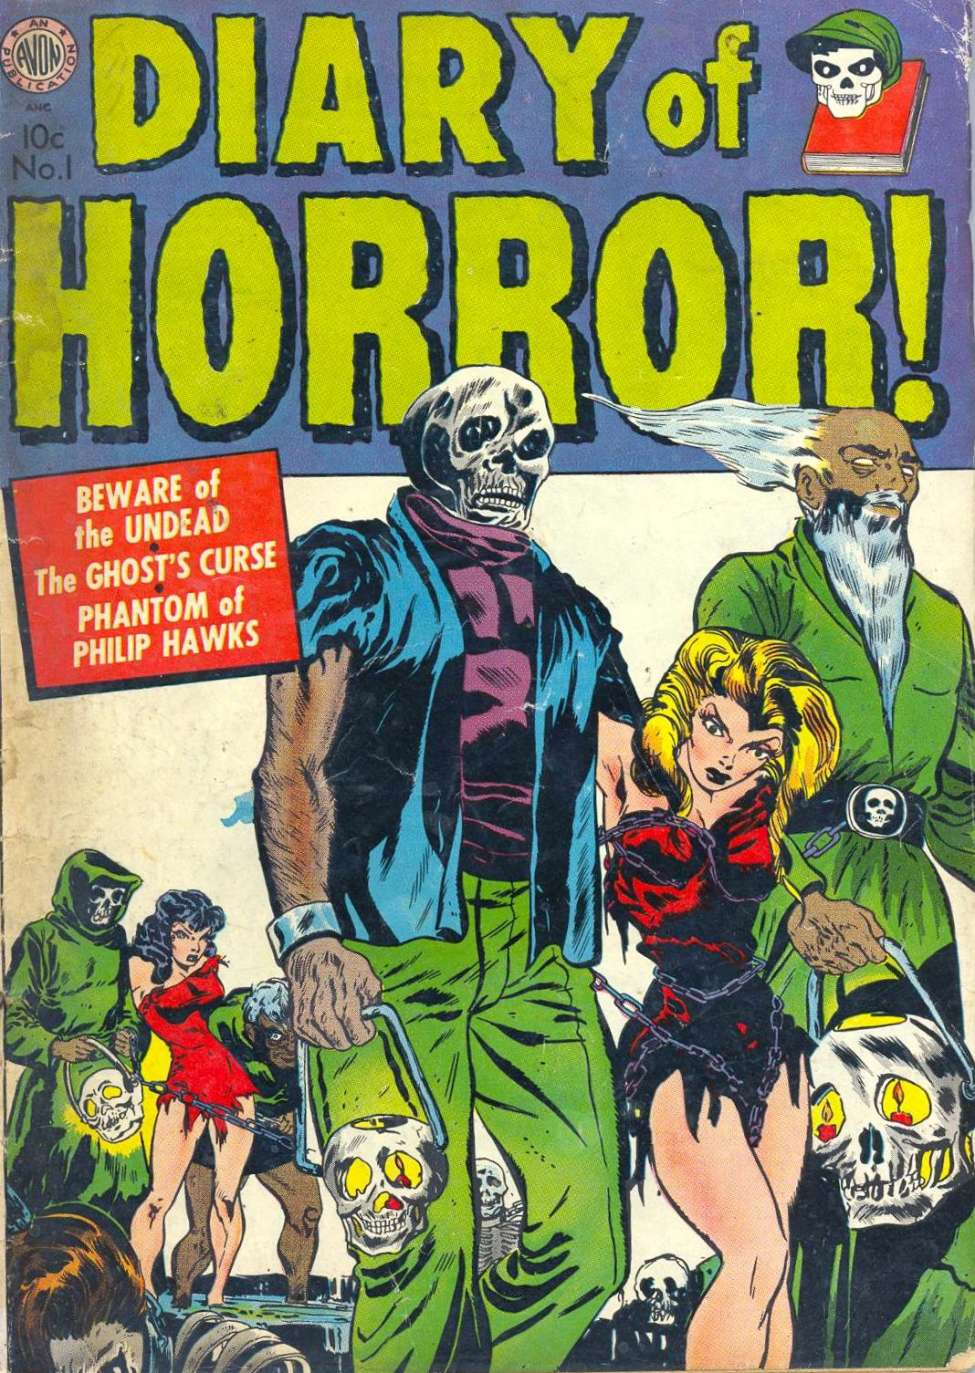 Diary of Horror #1 by Avon